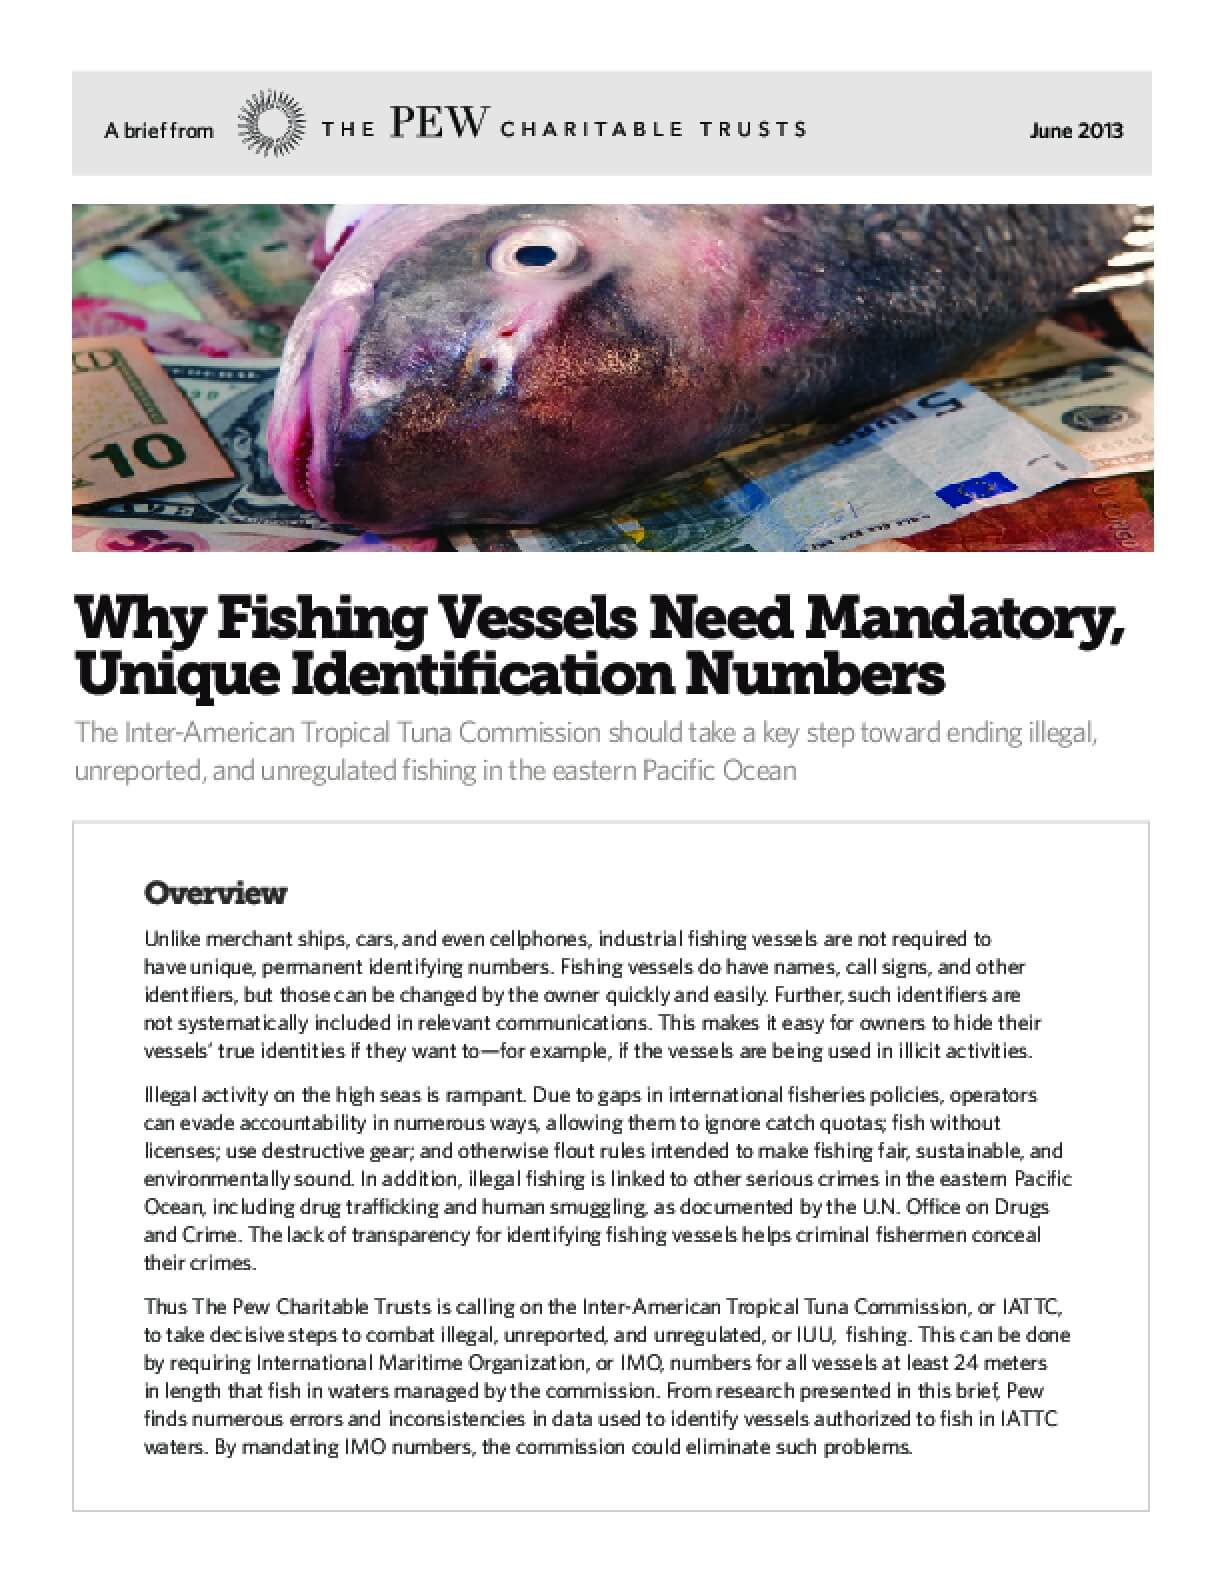 Why Fishing Vessels Need Mandatory, Unique Identification Numbers